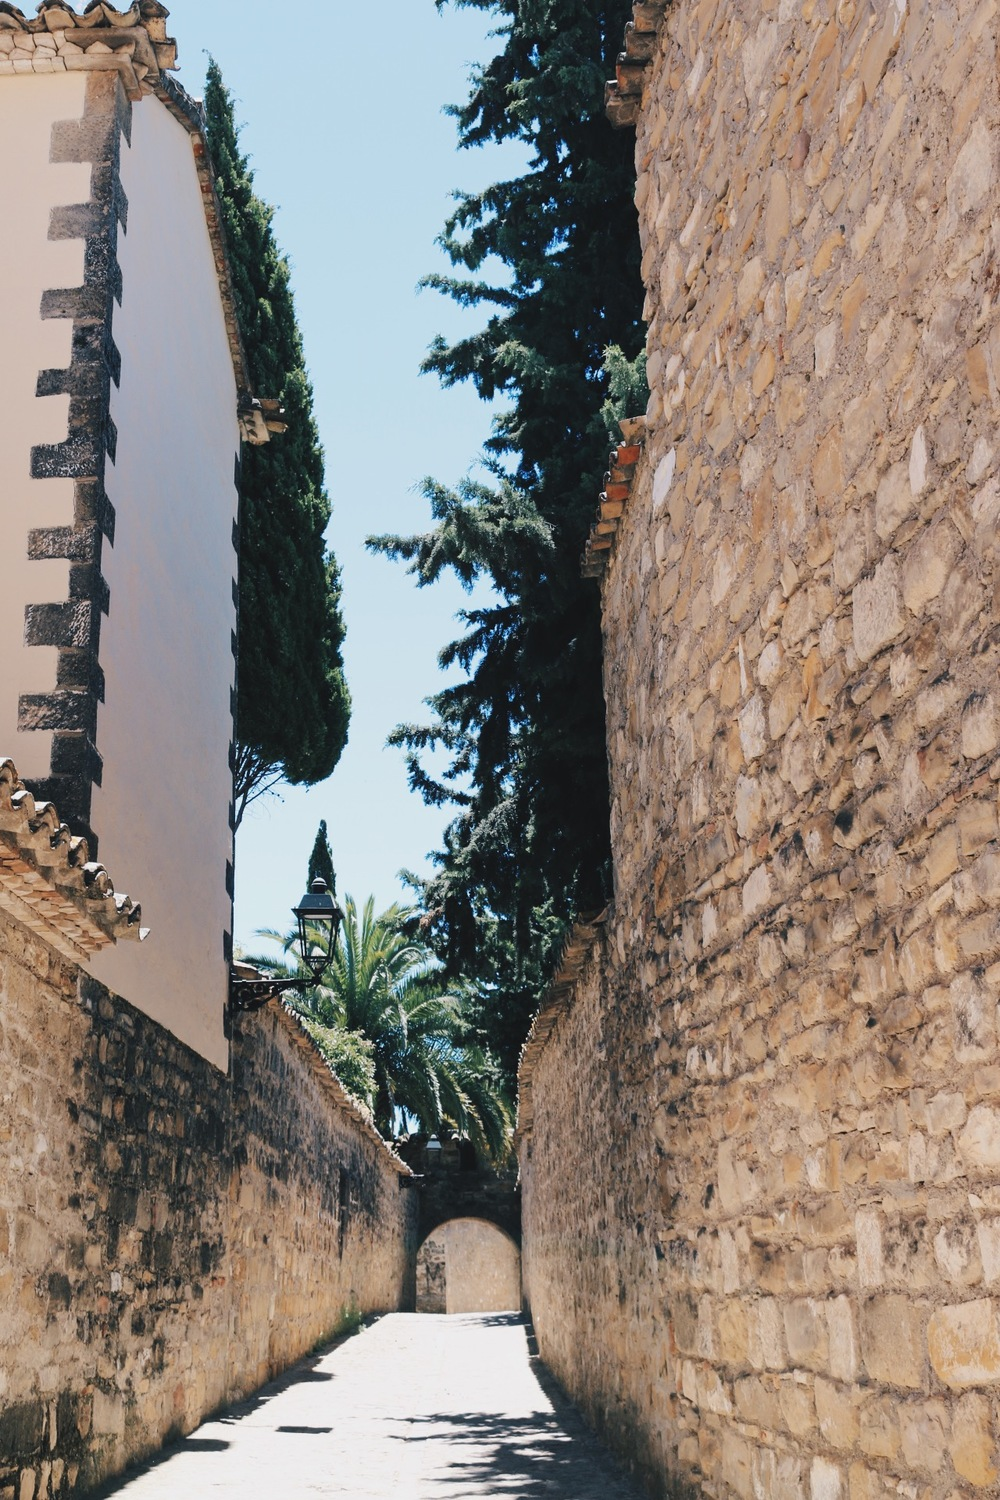 TIME MACHINE: THE NARROW PATHS BY THE CATHEDRAL